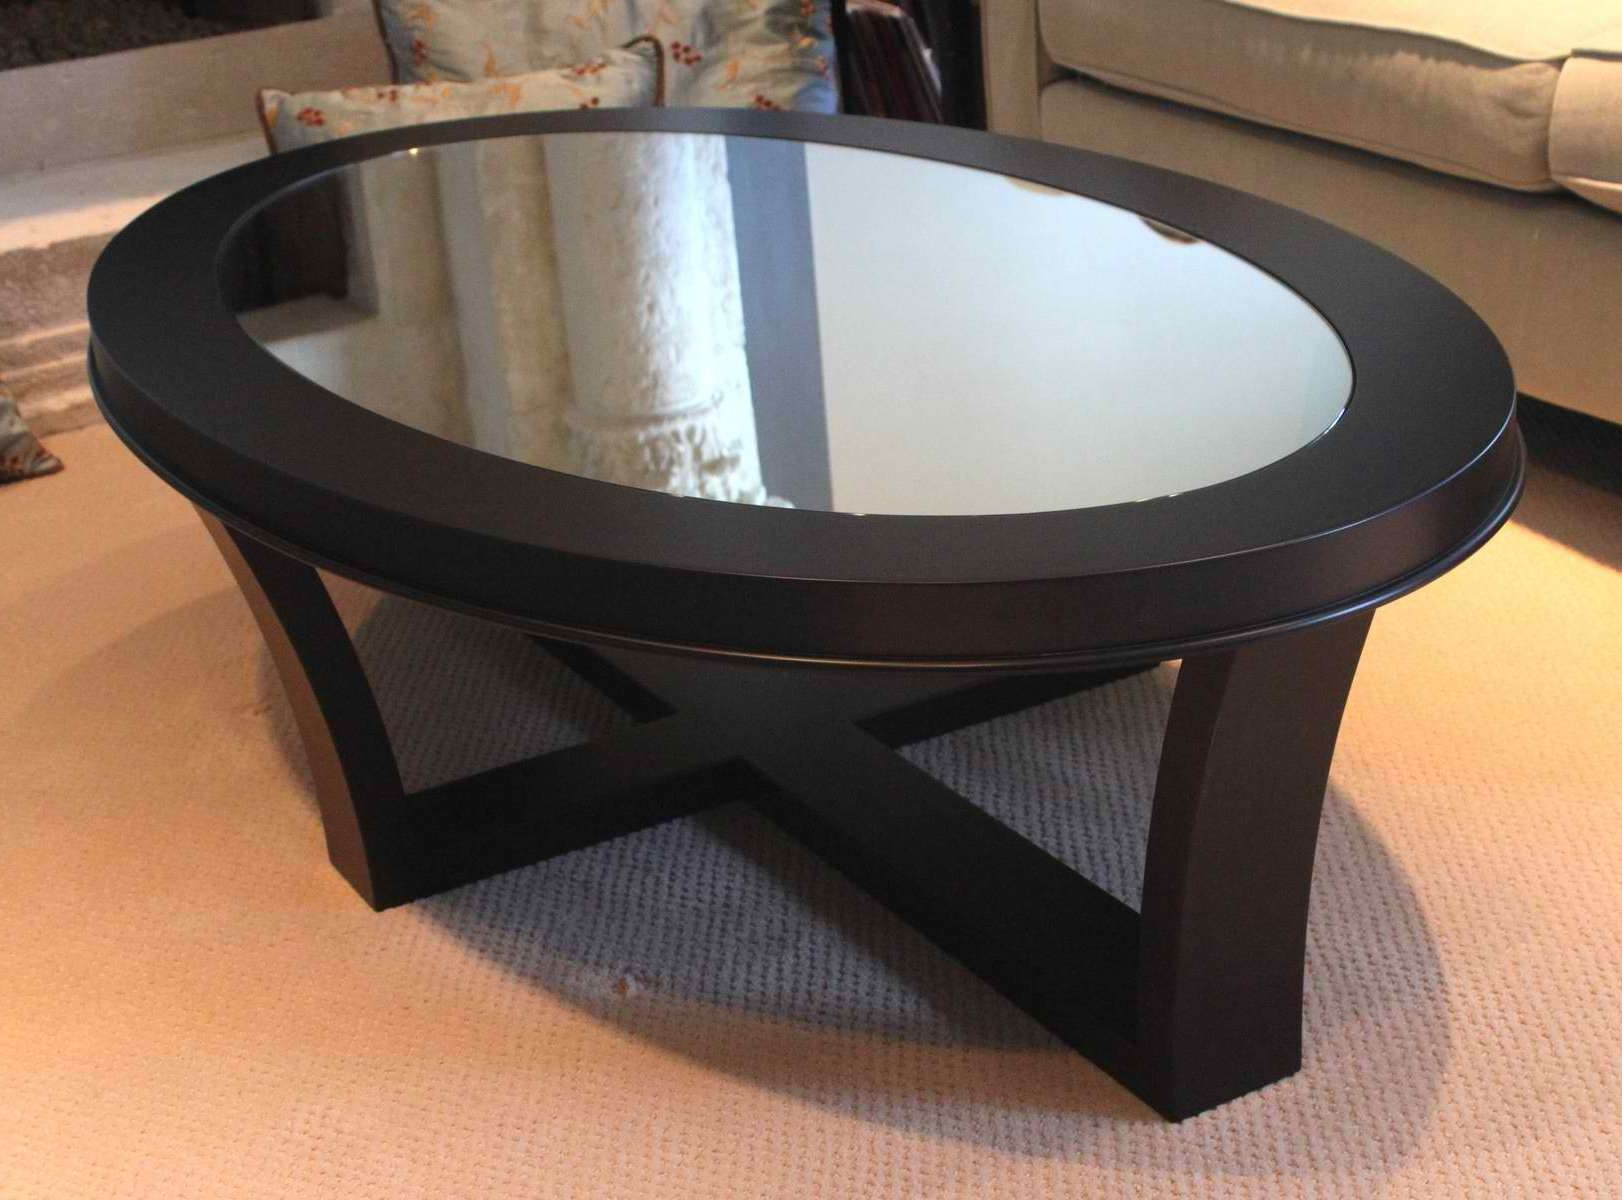 Coffee Table : Magnificent Oversized Coffee Table Black Gloss With Regard To 2018 Oval Gloss Coffee Tables (View 4 of 20)